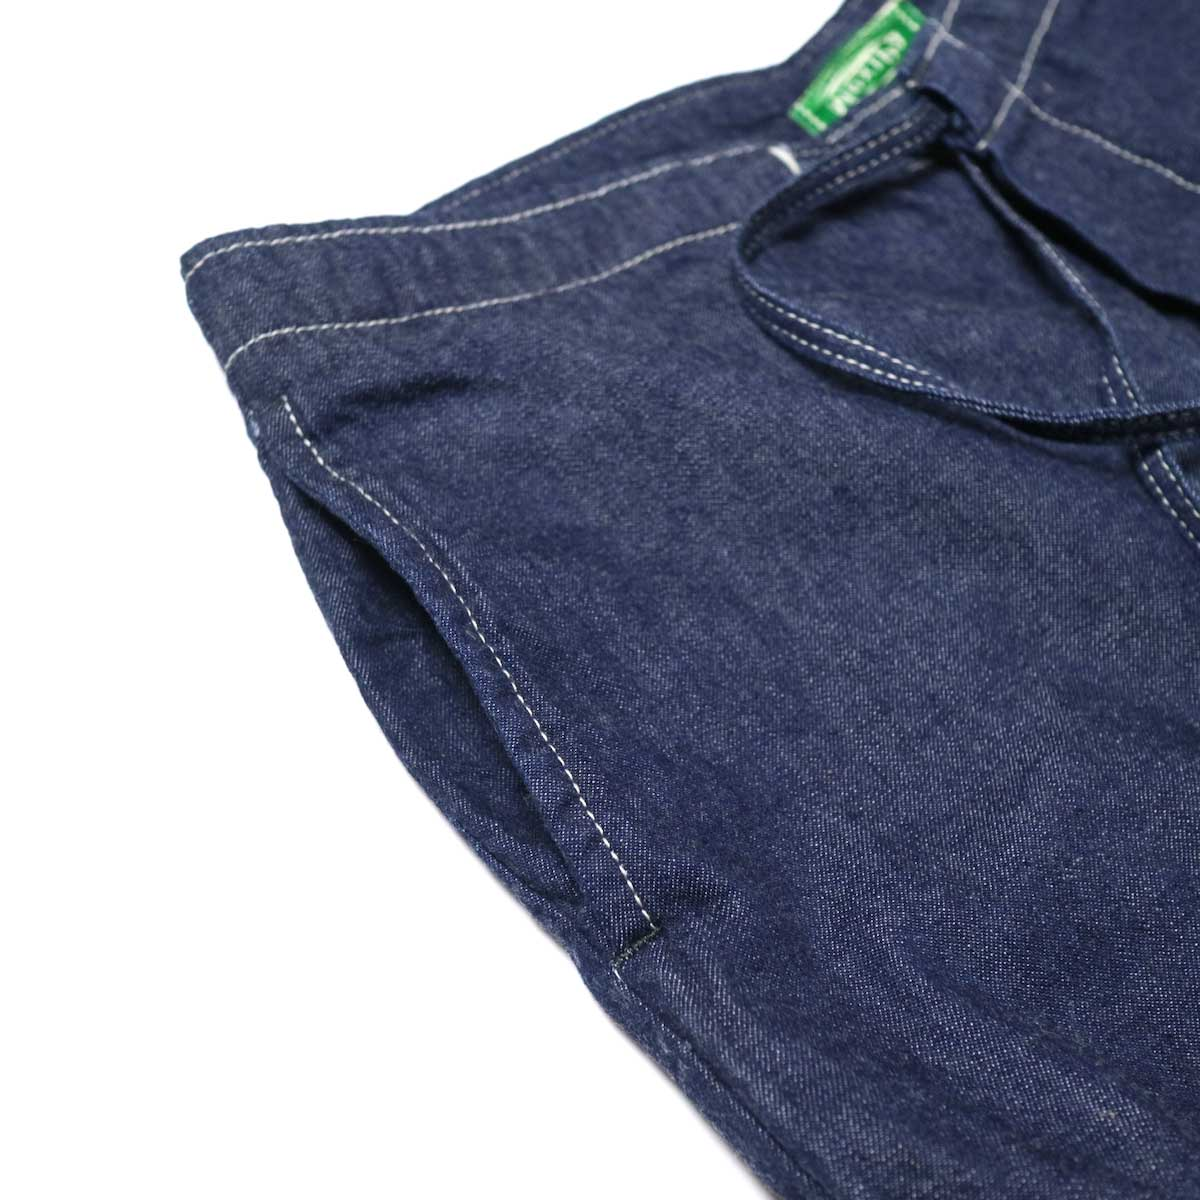 MexiPa / Selvage Denim Mexican PT ポケット